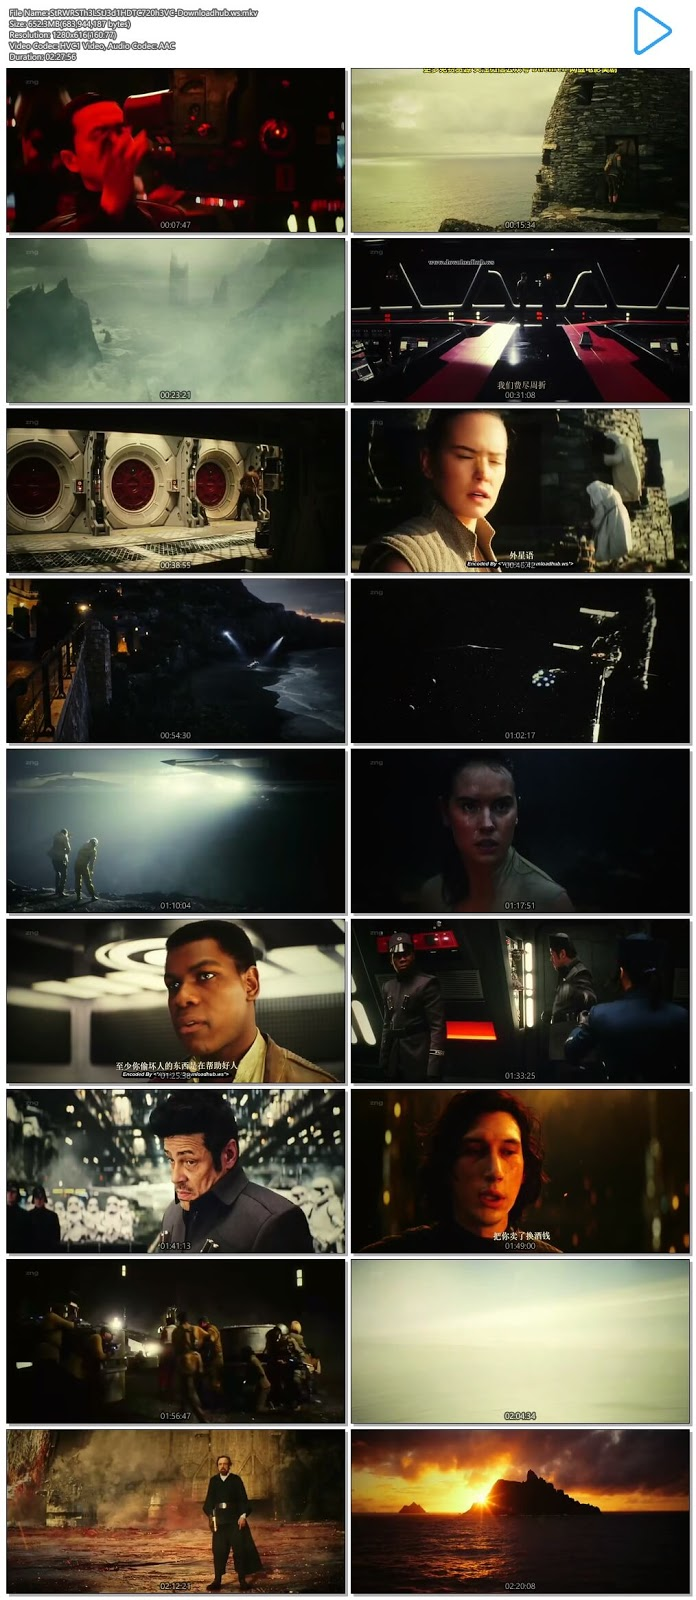 Star Wars The Last Jedi 2017 Hindi Dual Audio 720p HEVC HDTC Download